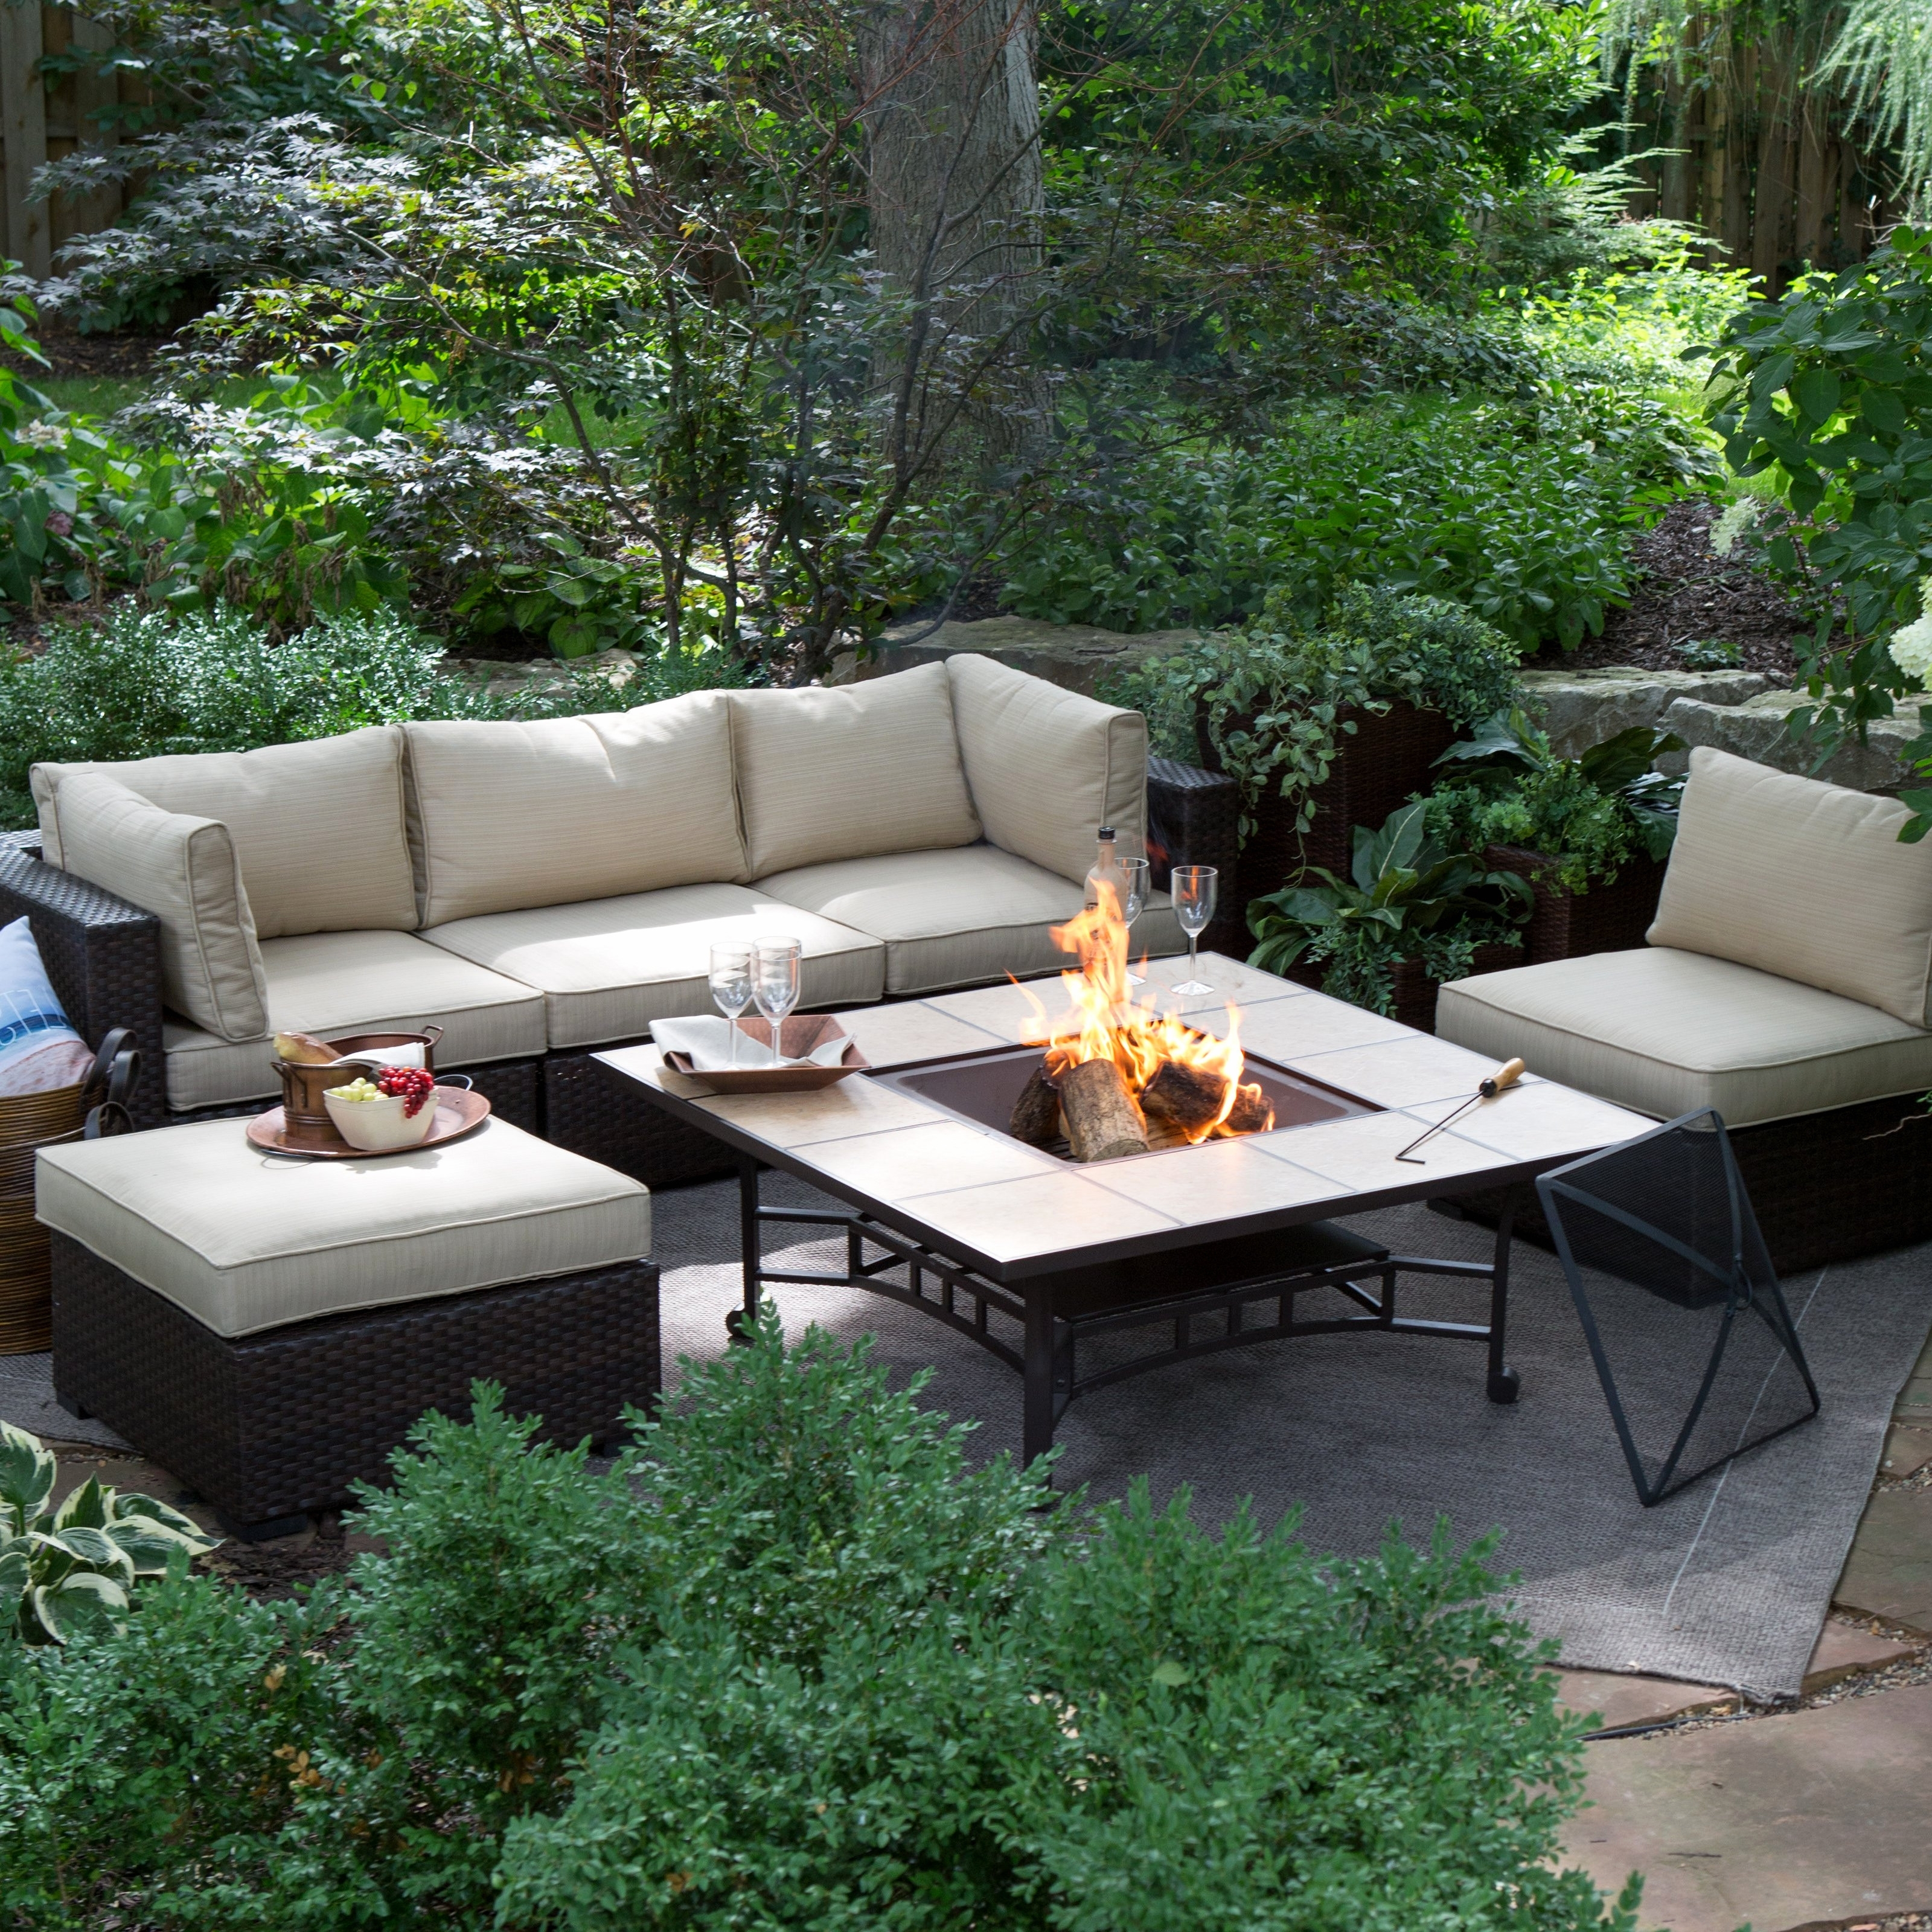 Patio Furniture Conversation Sets With Fire Pit For Most Current Patio Table With Gas Fire Pit Lovely Conversation Sets Fire Pit (View 11 of 15)